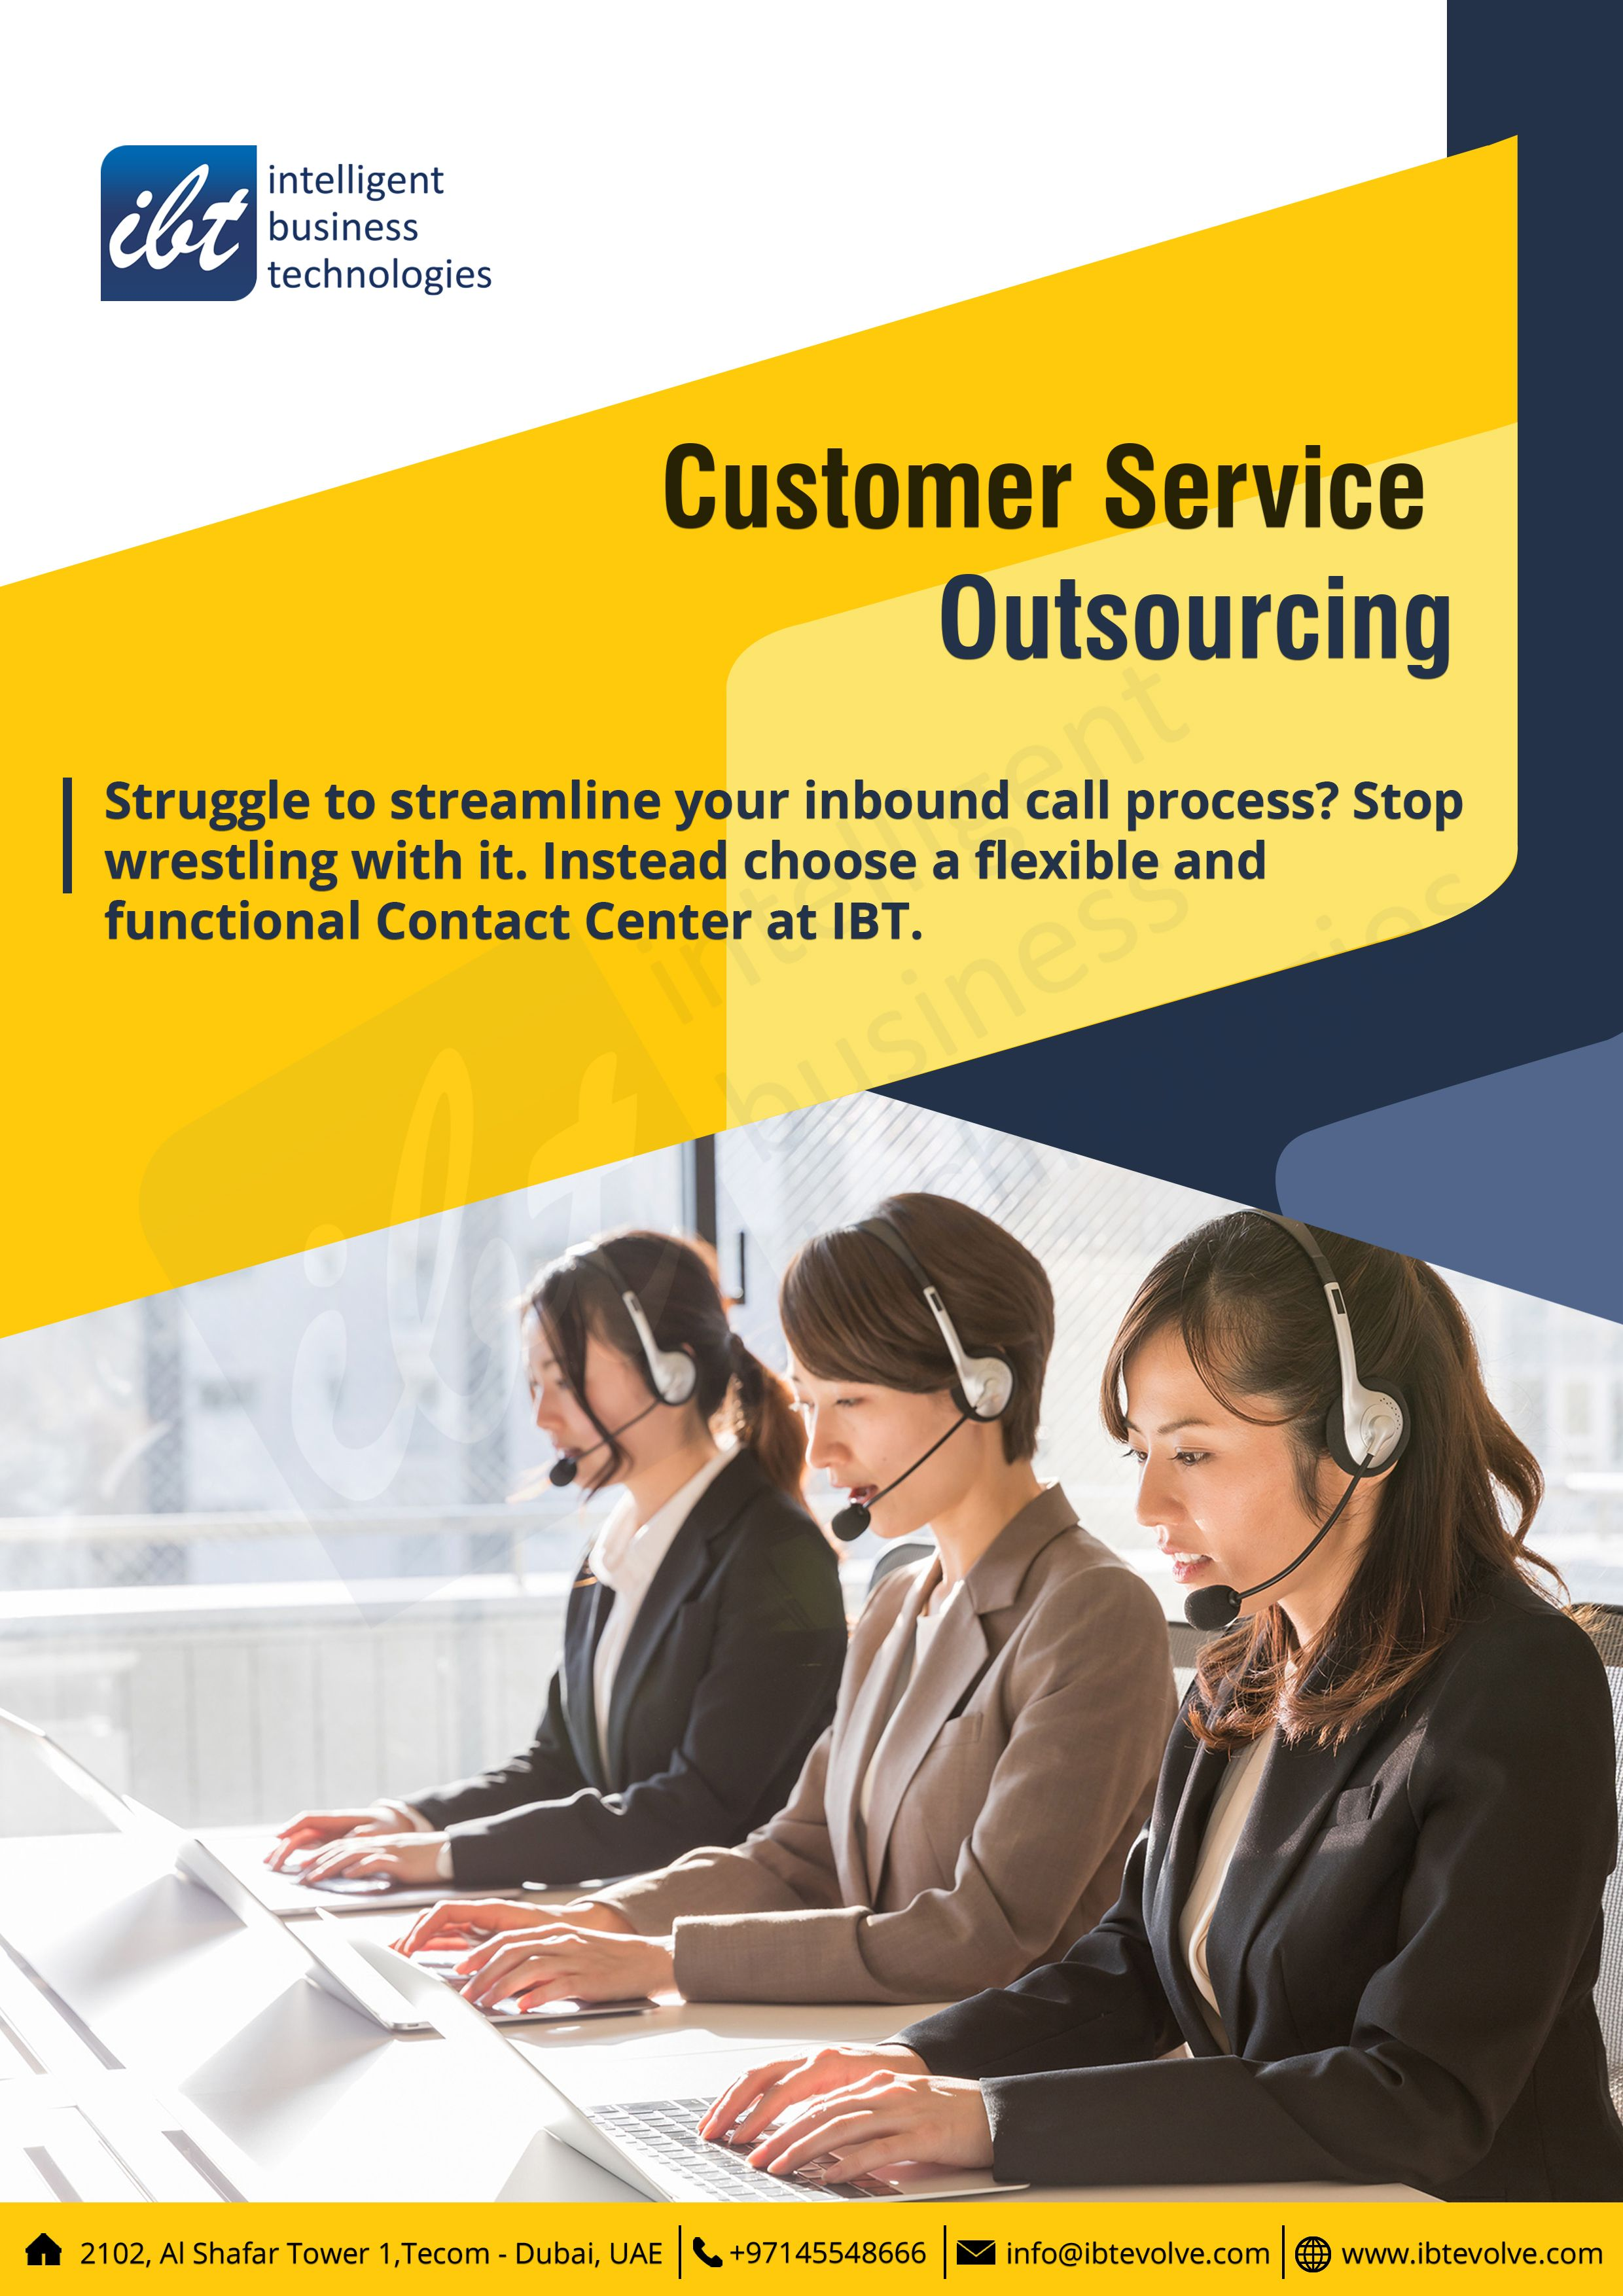 Customer Service Experience Customer Service Experience Business Process Outsourcing Business Customer